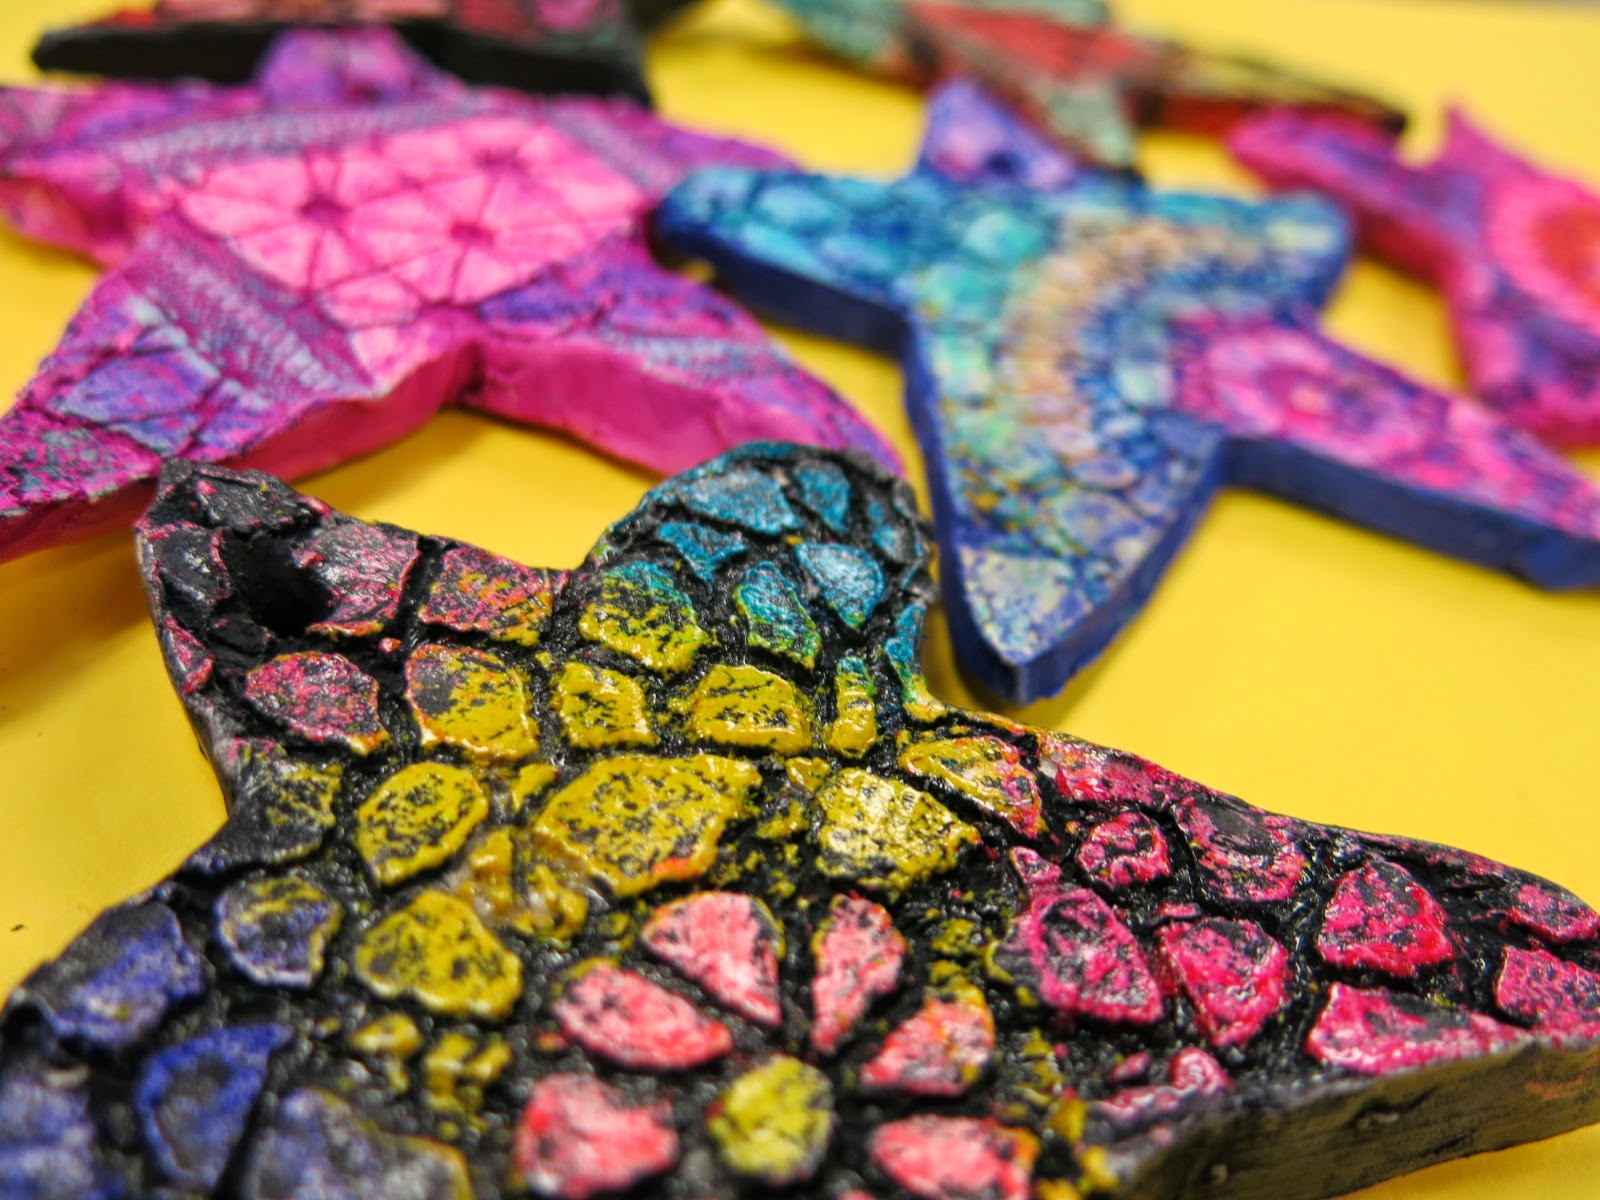 Cassie Stephens: clay projects